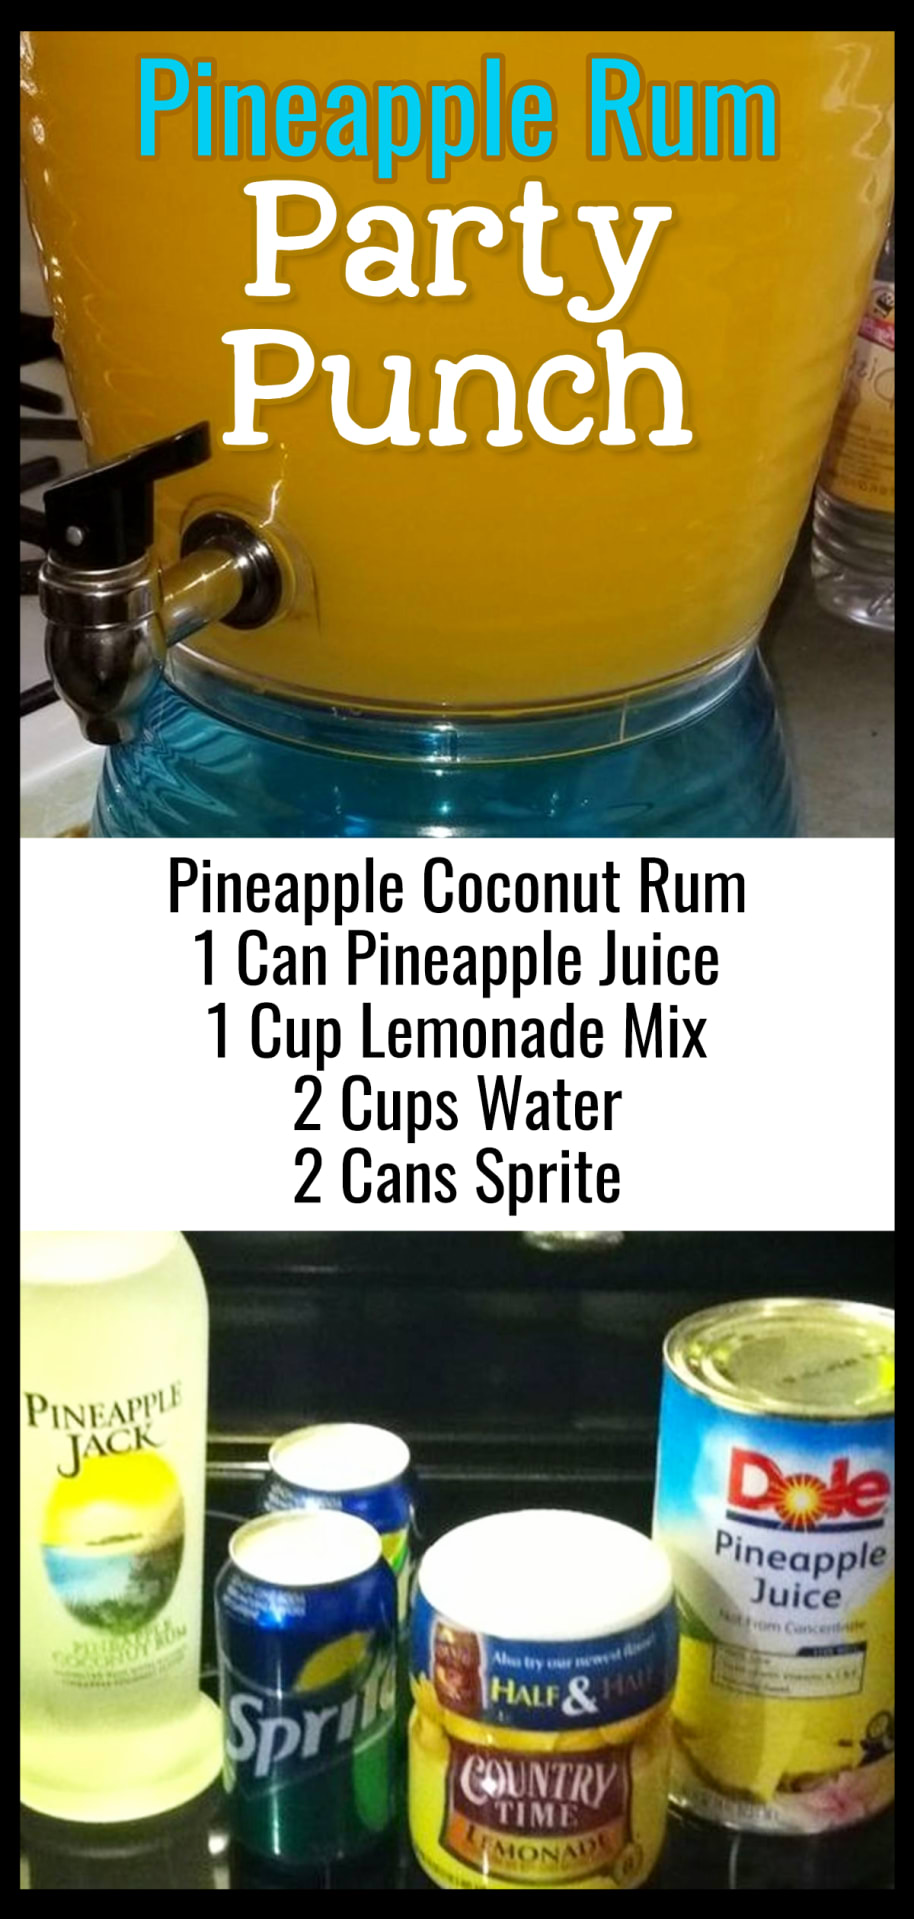 Pineapple Rum Party Punch Recipe - Easy Punch Recipes for a Crowd and Easy Party Drinks Ideas - Cranberry Vodka Punch, Pineapple Orange Juice Alcoholic Drinks, Punch for 50 and Simple Punch Recipes for a Crowd, Party, Brunch, Cookout or Bridal Shower - non-alcoholic punch recipes and simple alcoholic punch recipes, non-alcoholic holiday punch, easy fruit punch recipes, easy punch recipes with sprite and pineapple juice, jungle juice recipe with fruit